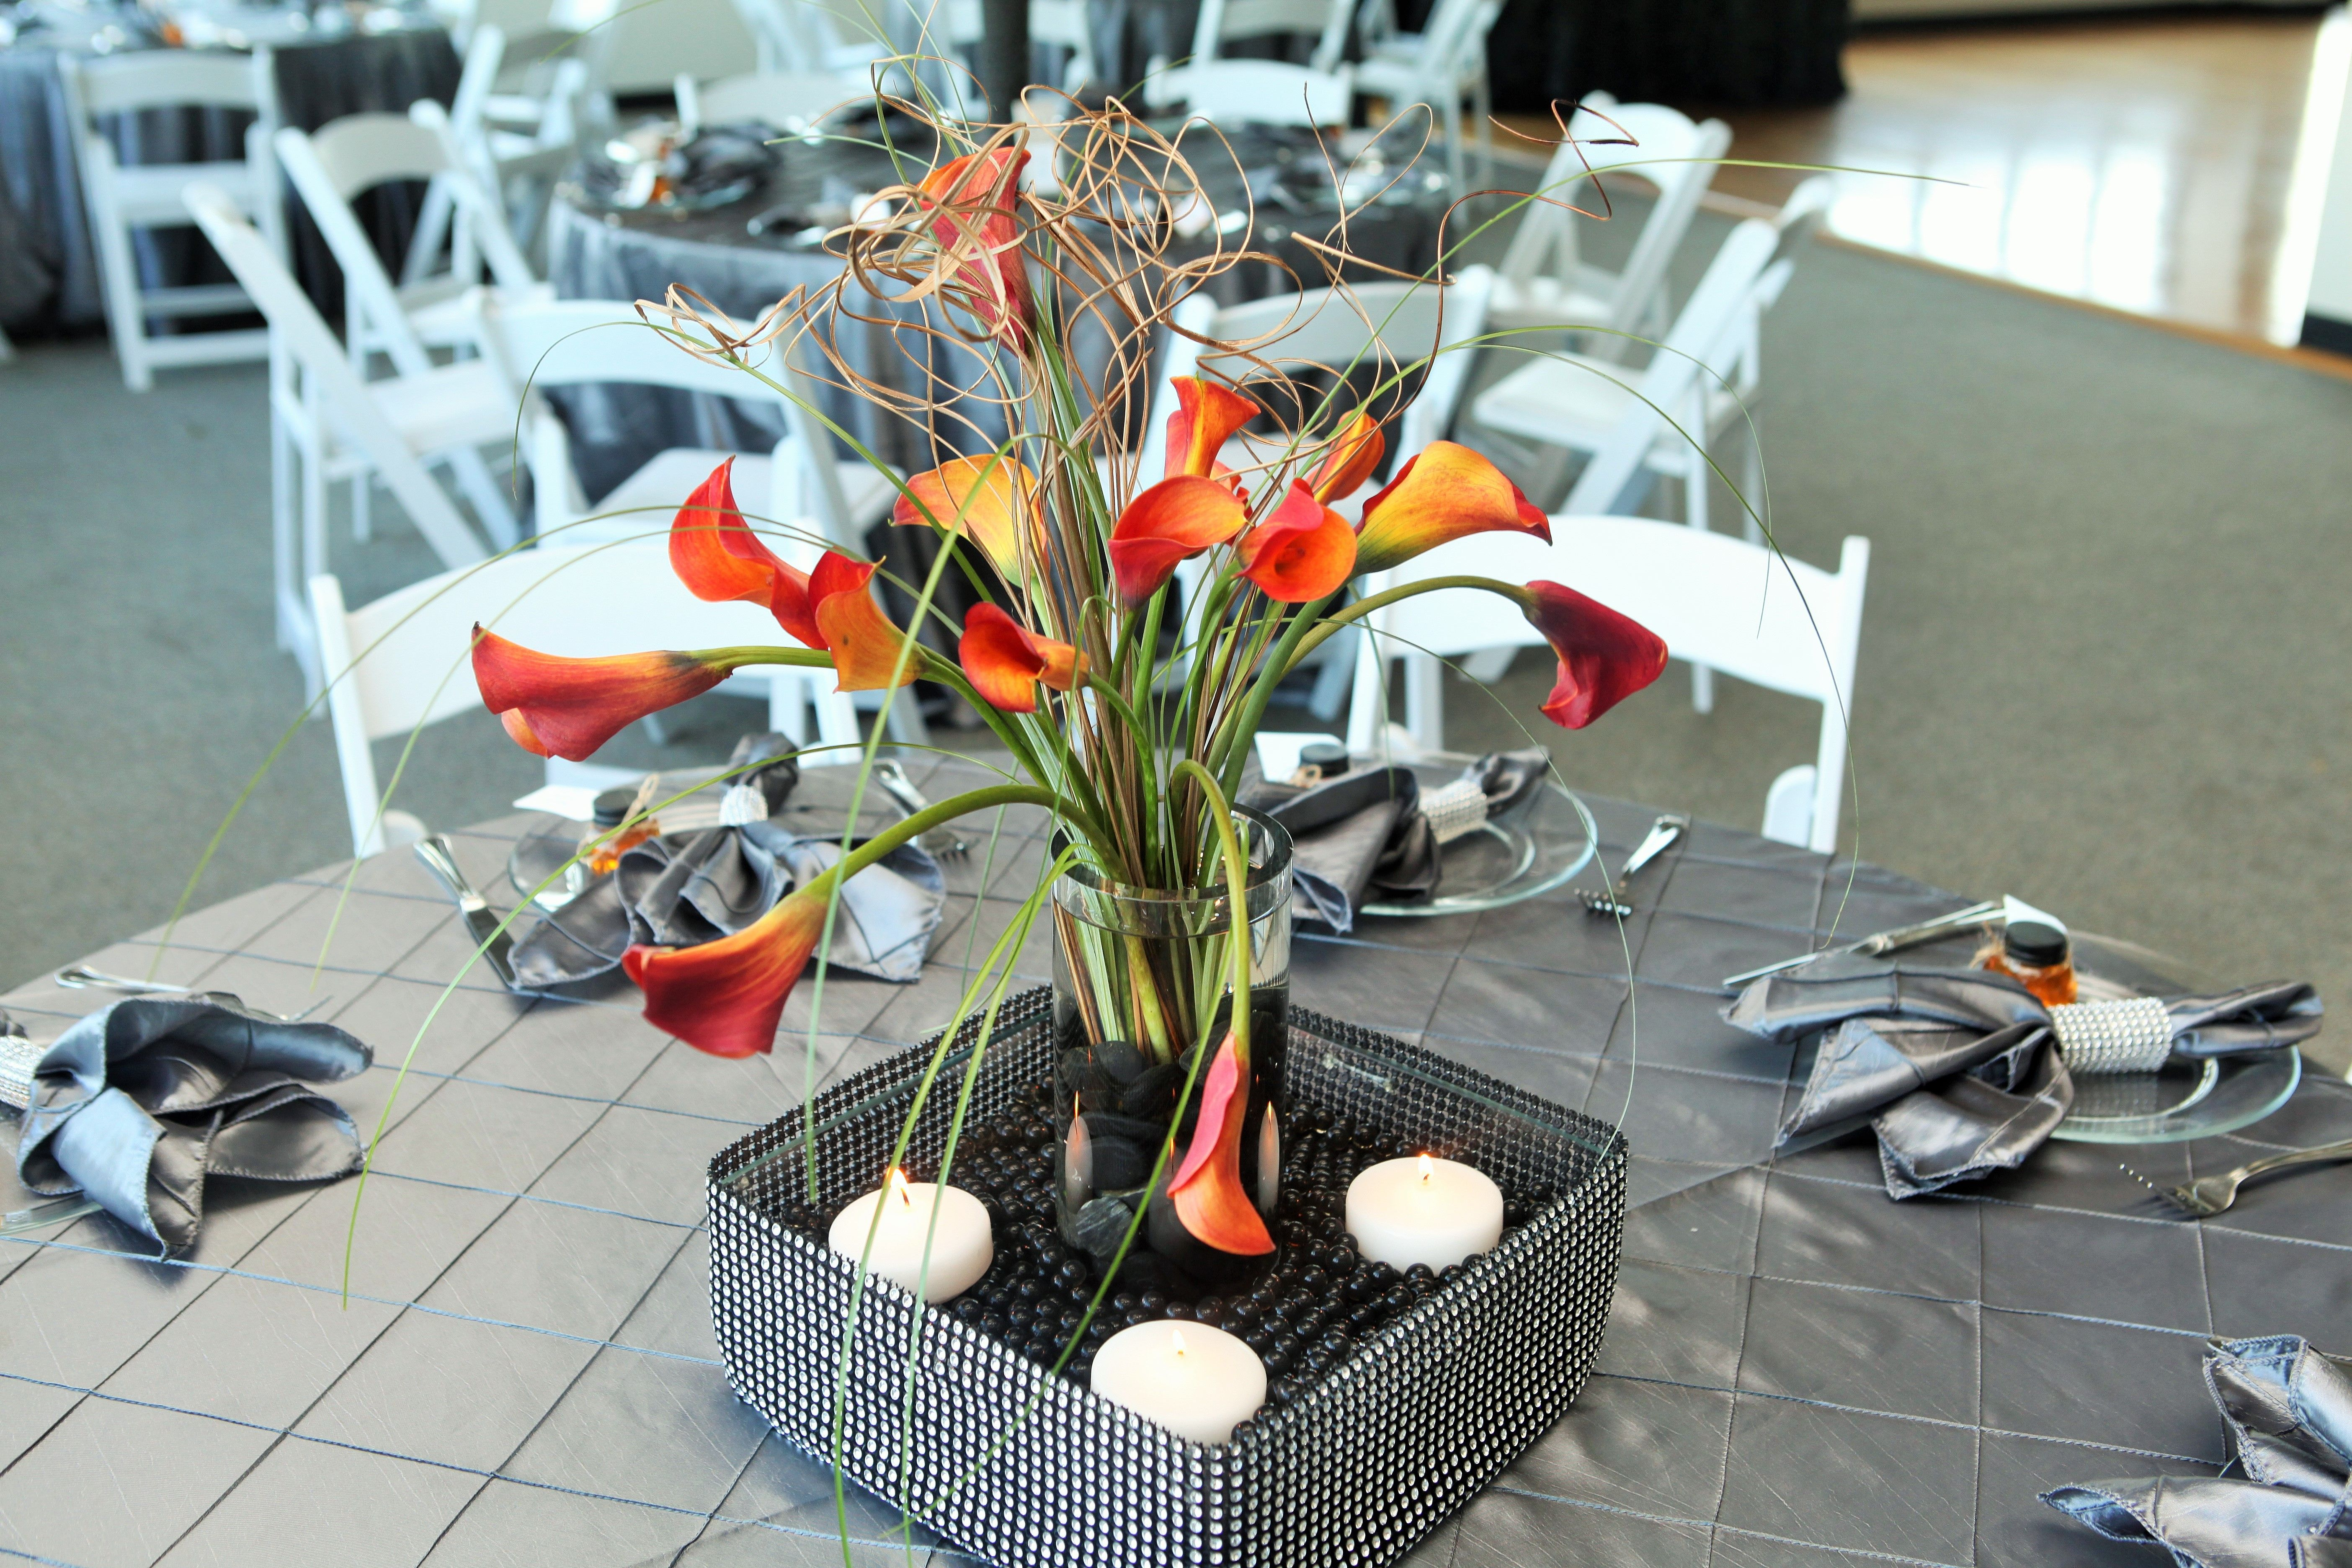 Square Glass Wrapped In Bling Ribbon Wedding Centerpiece With Orange